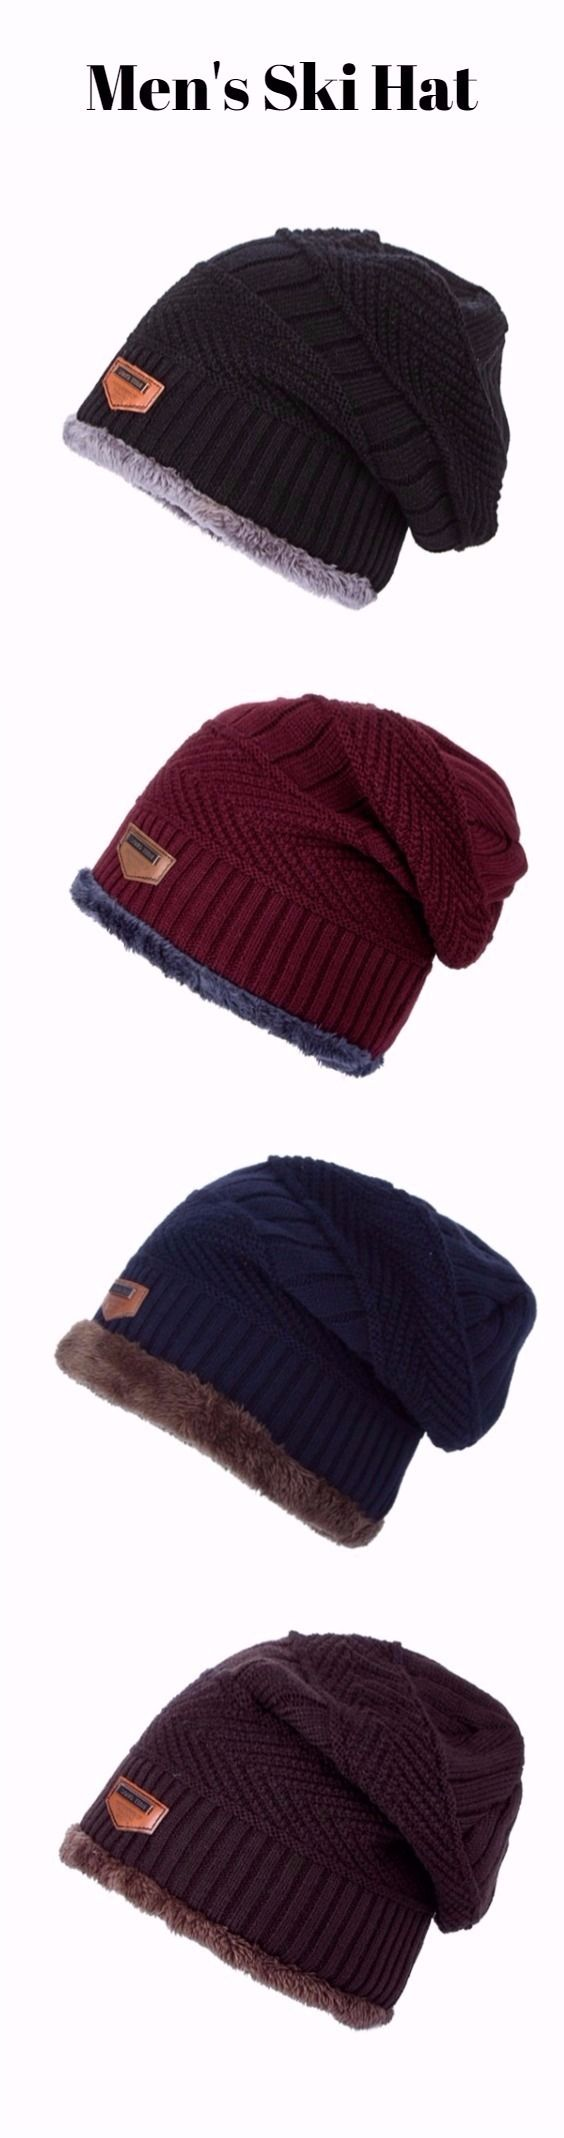 Outdoor Label Knit Ski Hat